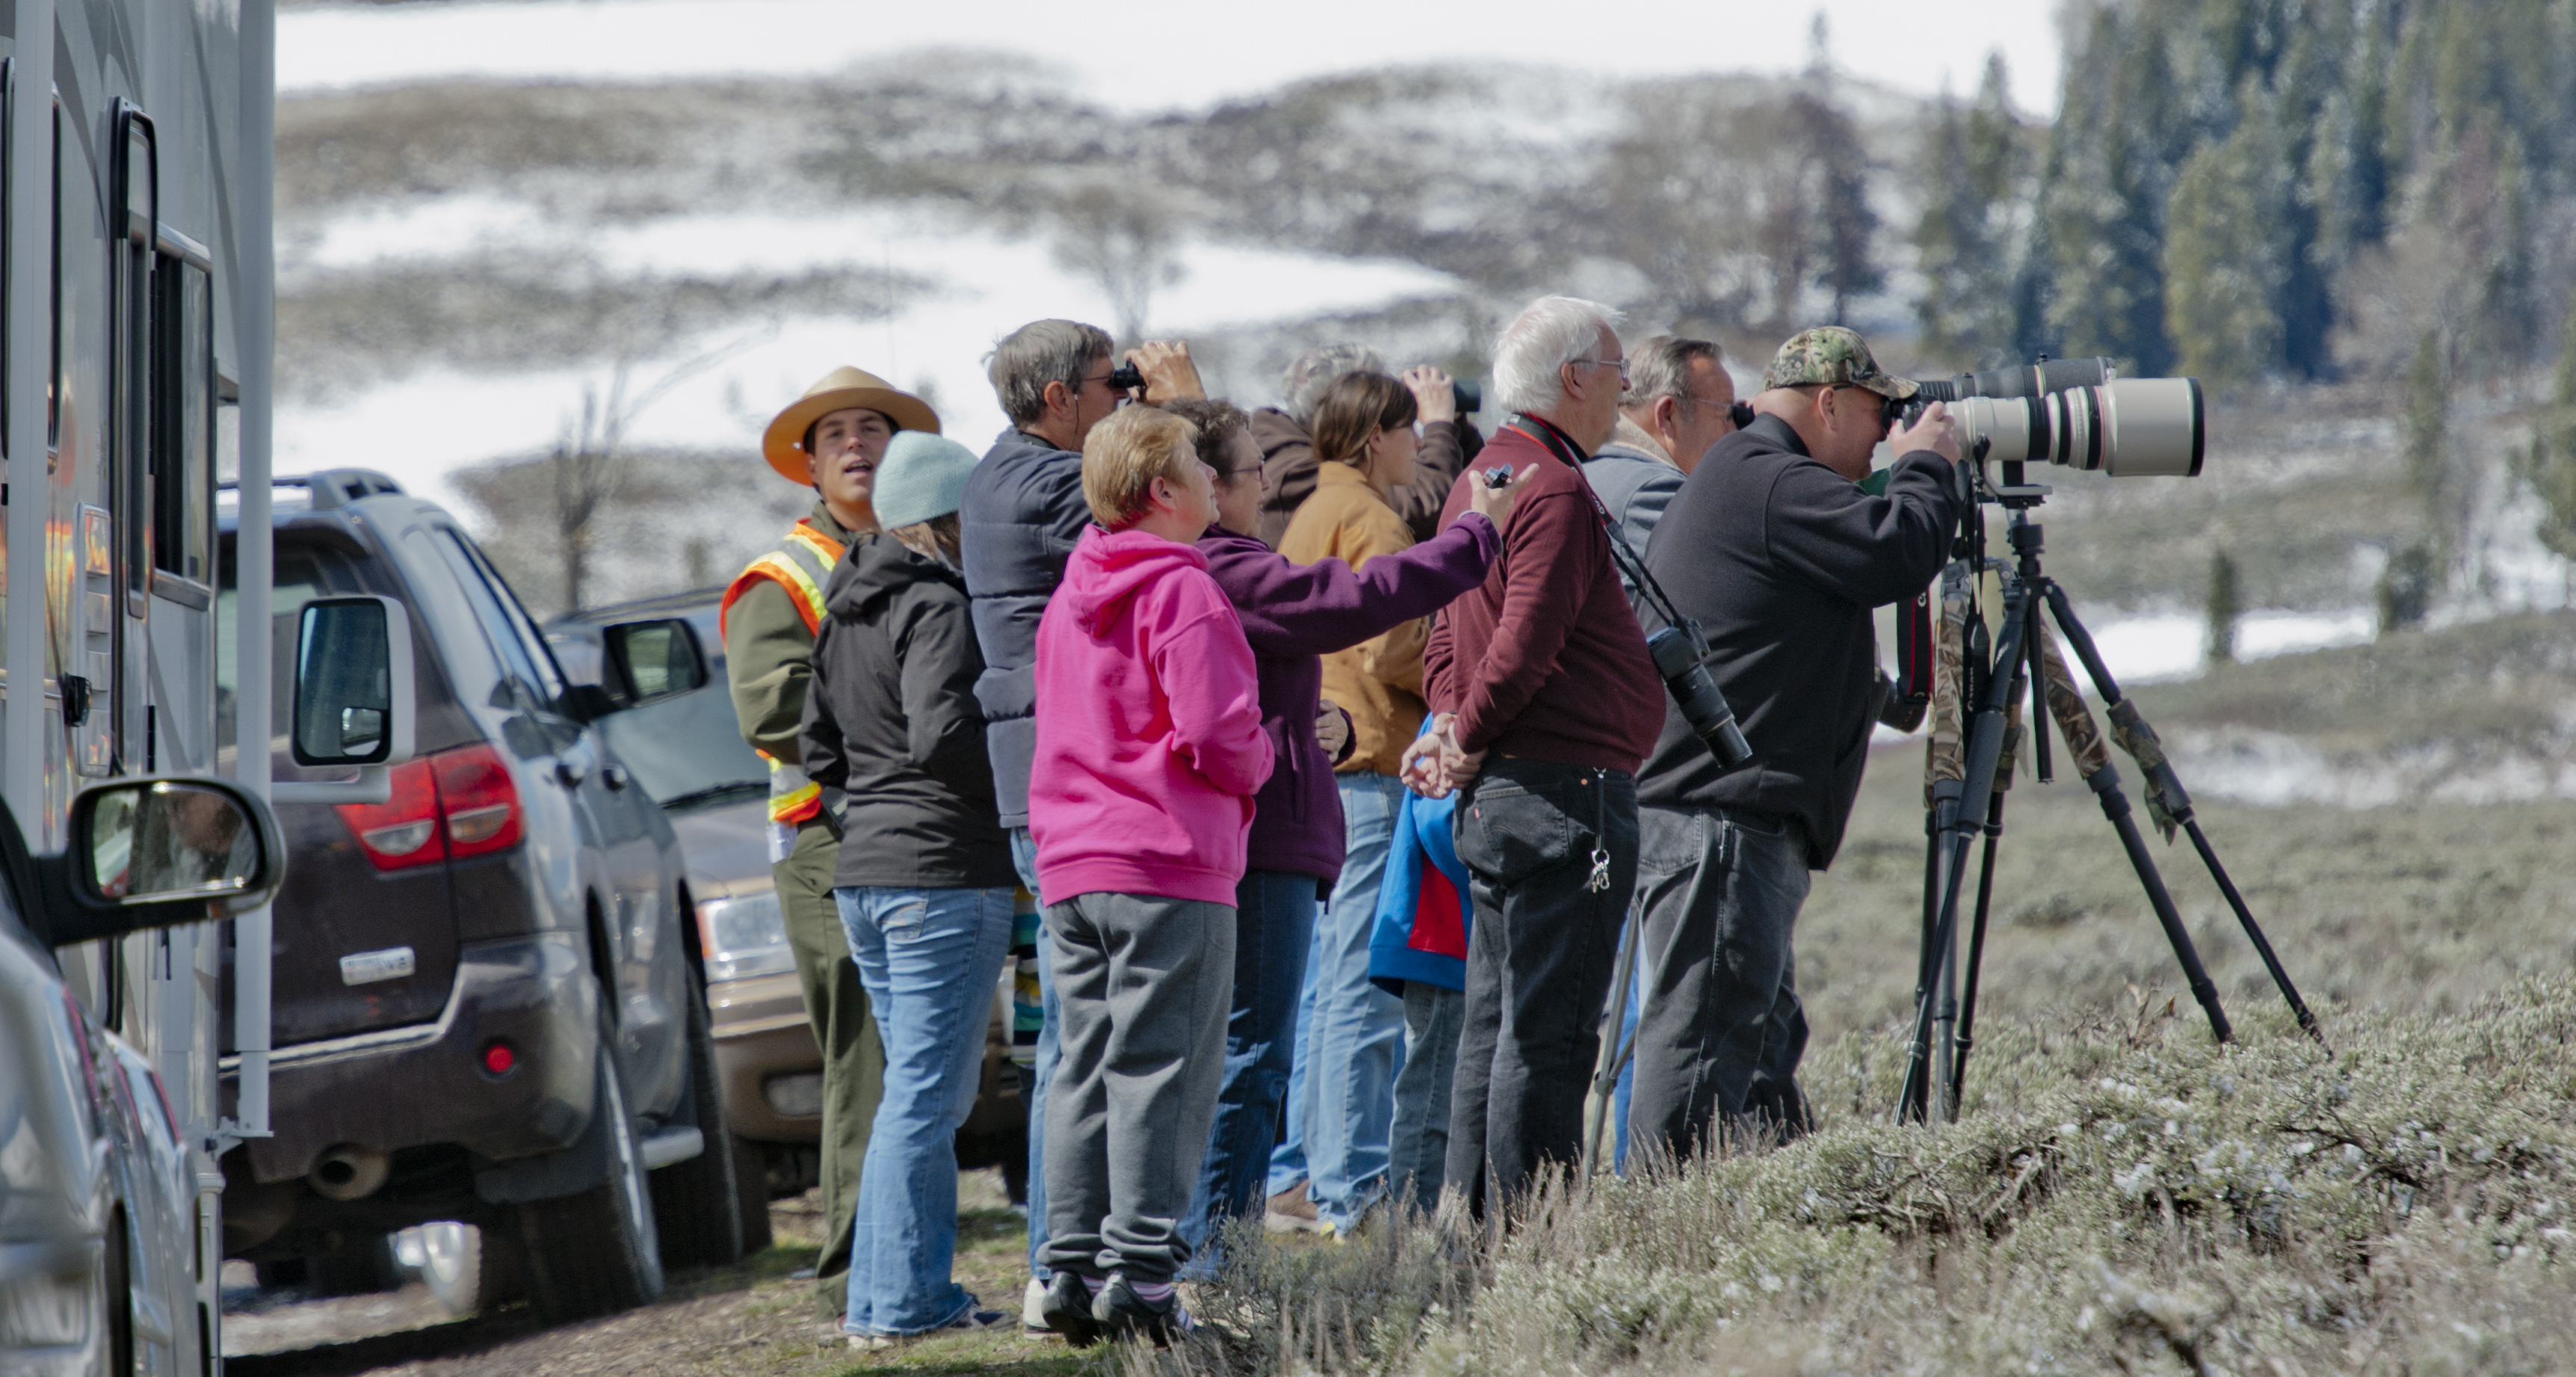 Bison Observation in Yellowstone National Park